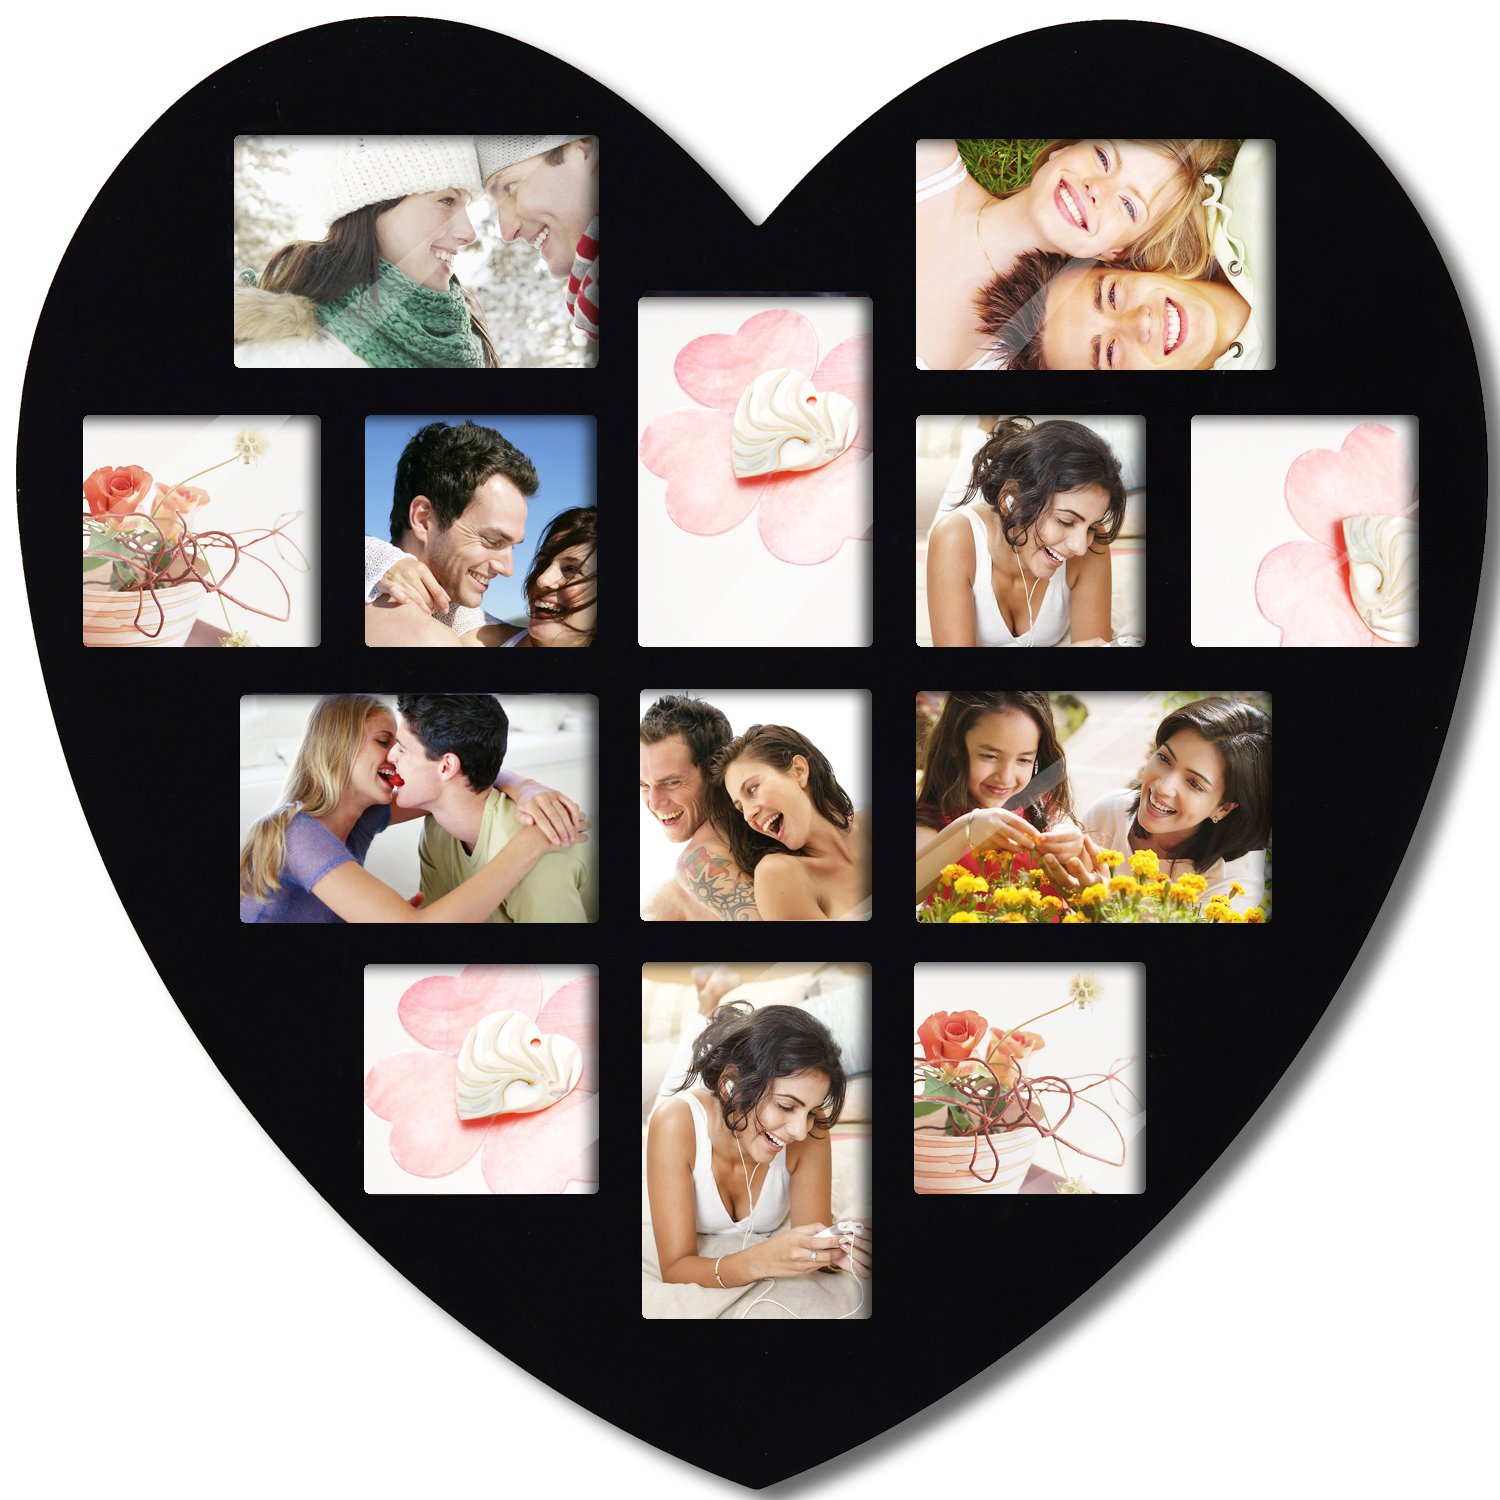 Adeco [PF0304] 13 Openings Heart Picture Collage Frame – Holds Seven 4×4 and Six 4×6 Inch Photos – Heart Shaped Wood Photo Collage Decoration – Black, for Wall Hanging – Love Picture Frame